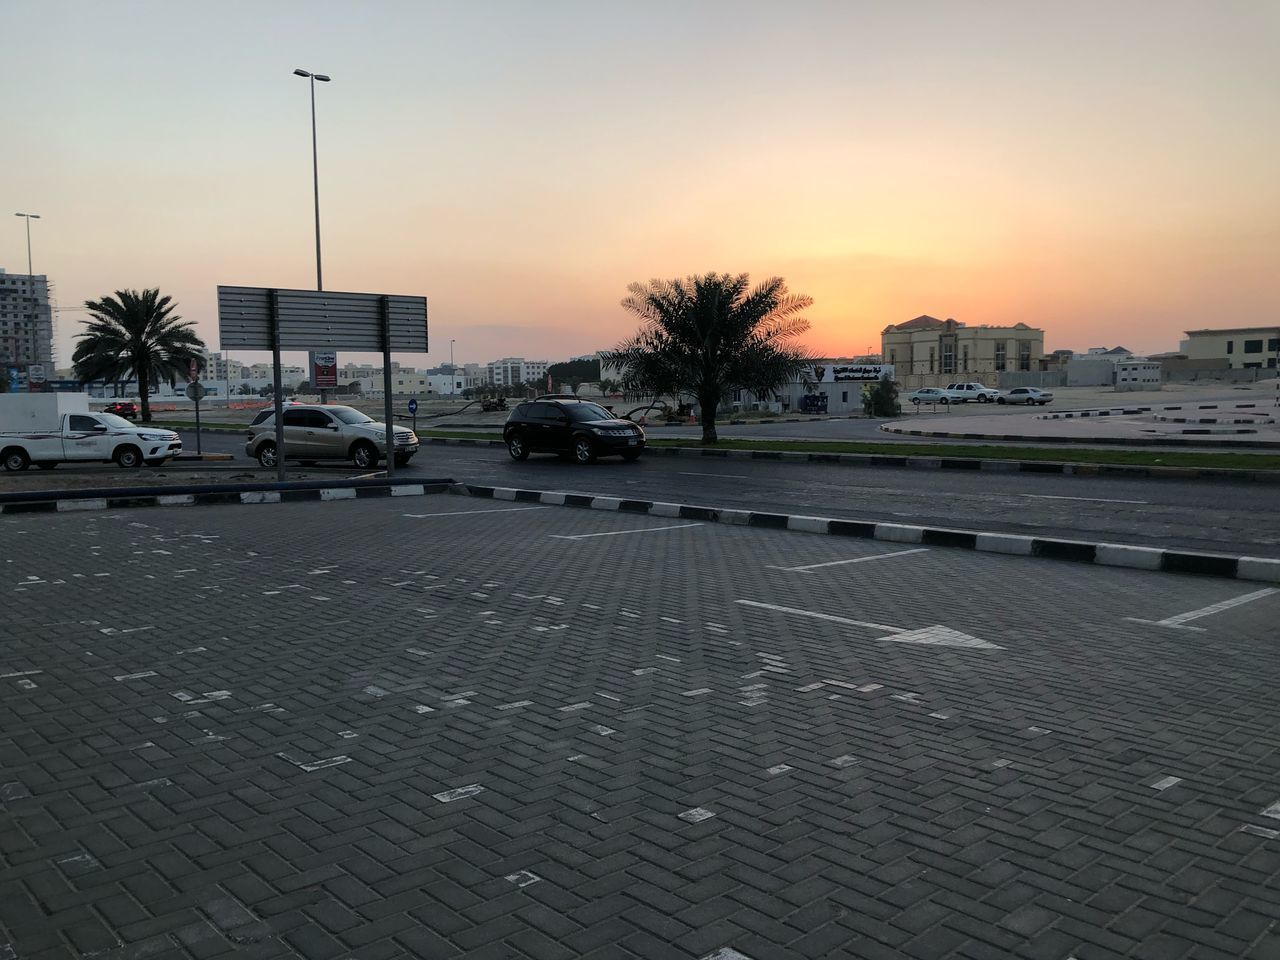 city, car, mode of transportation, motor vehicle, transportation, land vehicle, street, sky, architecture, sunset, building exterior, built structure, tree, tropical climate, nature, plant, road, no people, orange color, palm tree, outdoors, paving stone